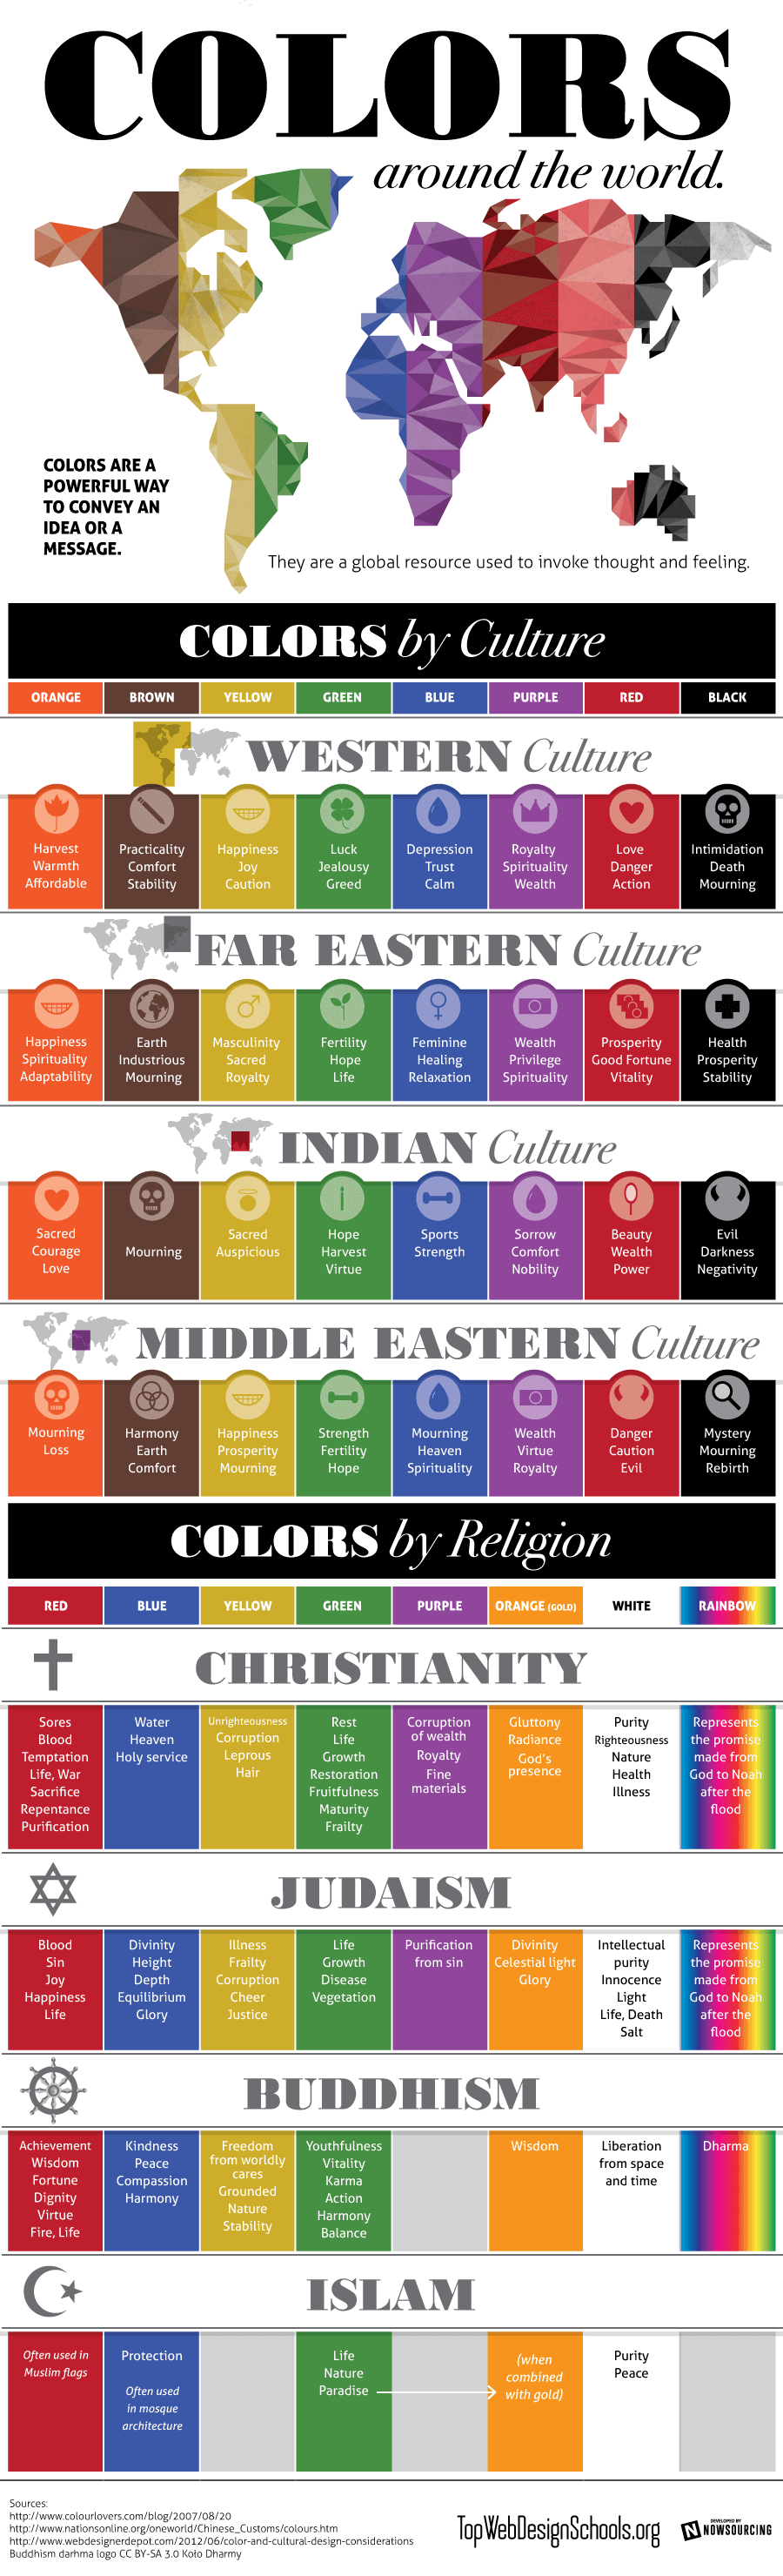 Culture Colors - Colors Around The World